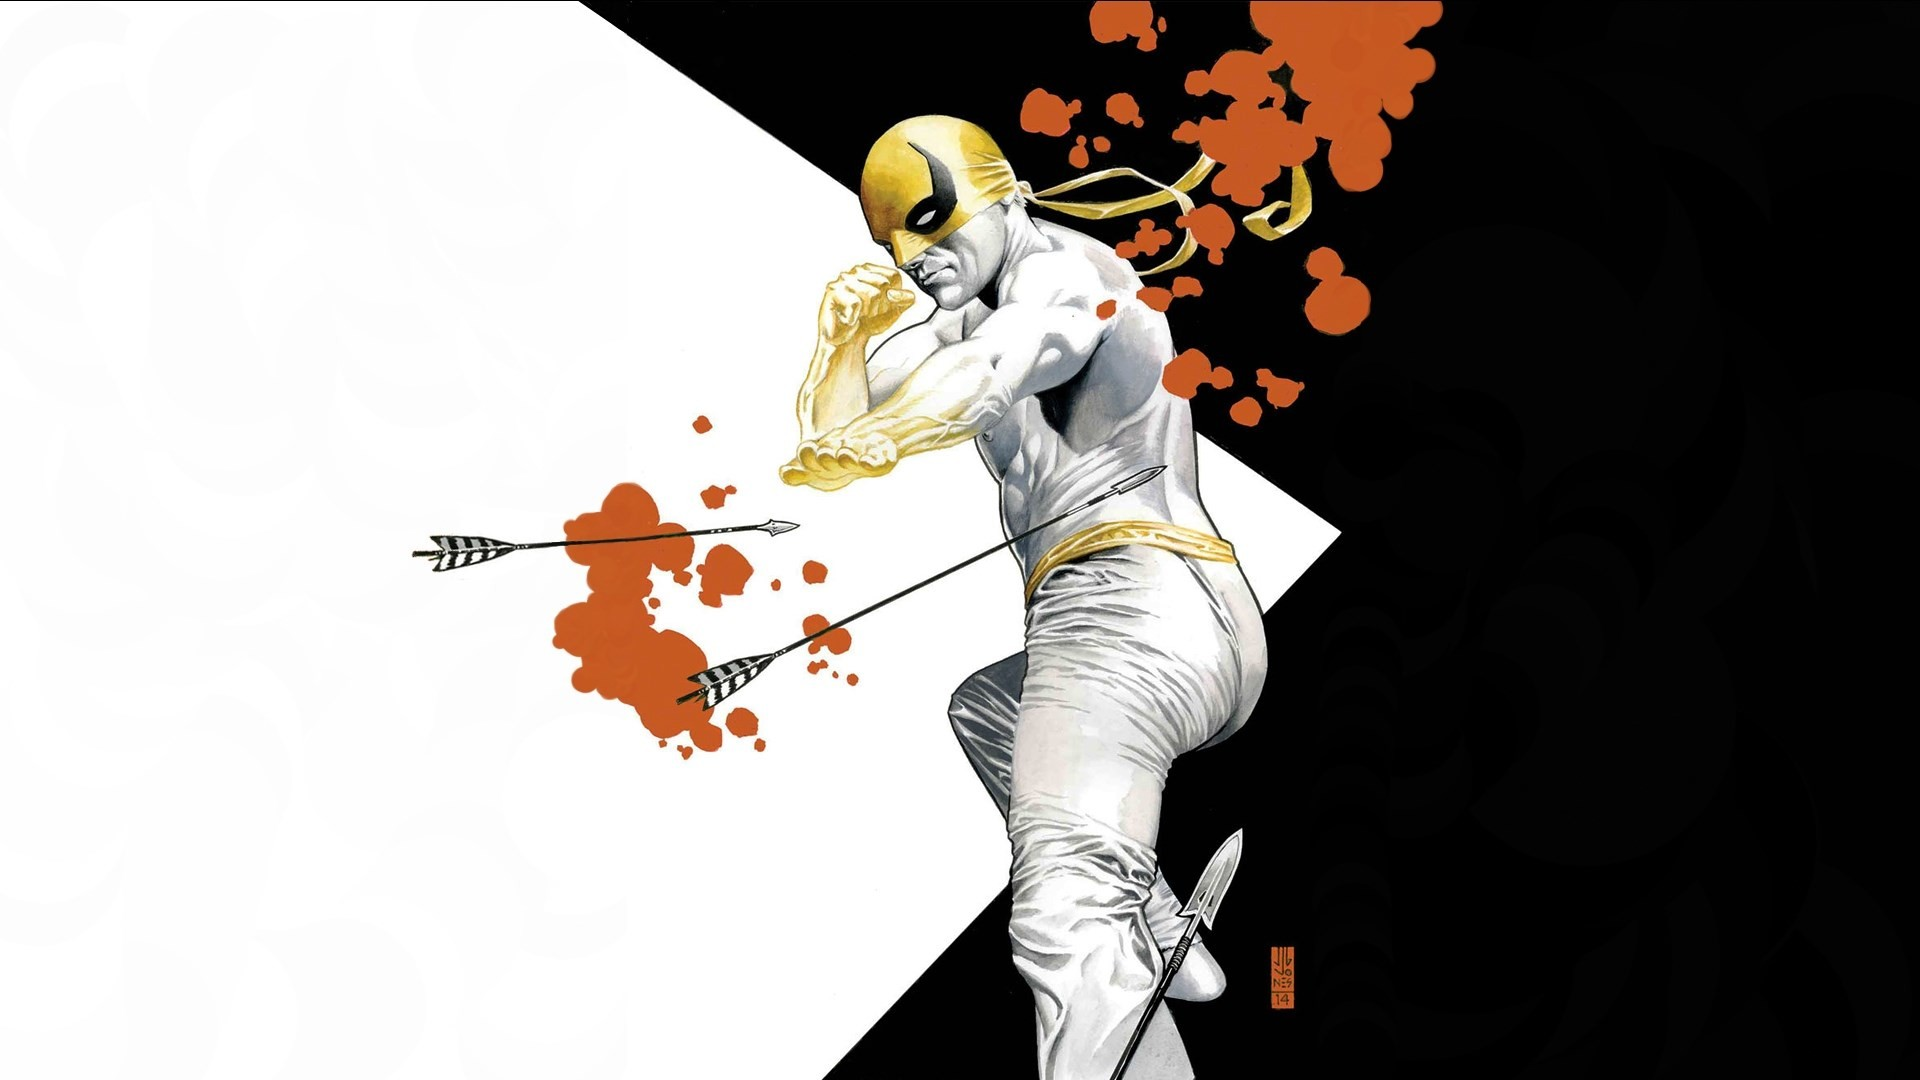 1920x1080 Wallpapers for Desktop: iron fist the living weapon picture (Andrea Nail  )